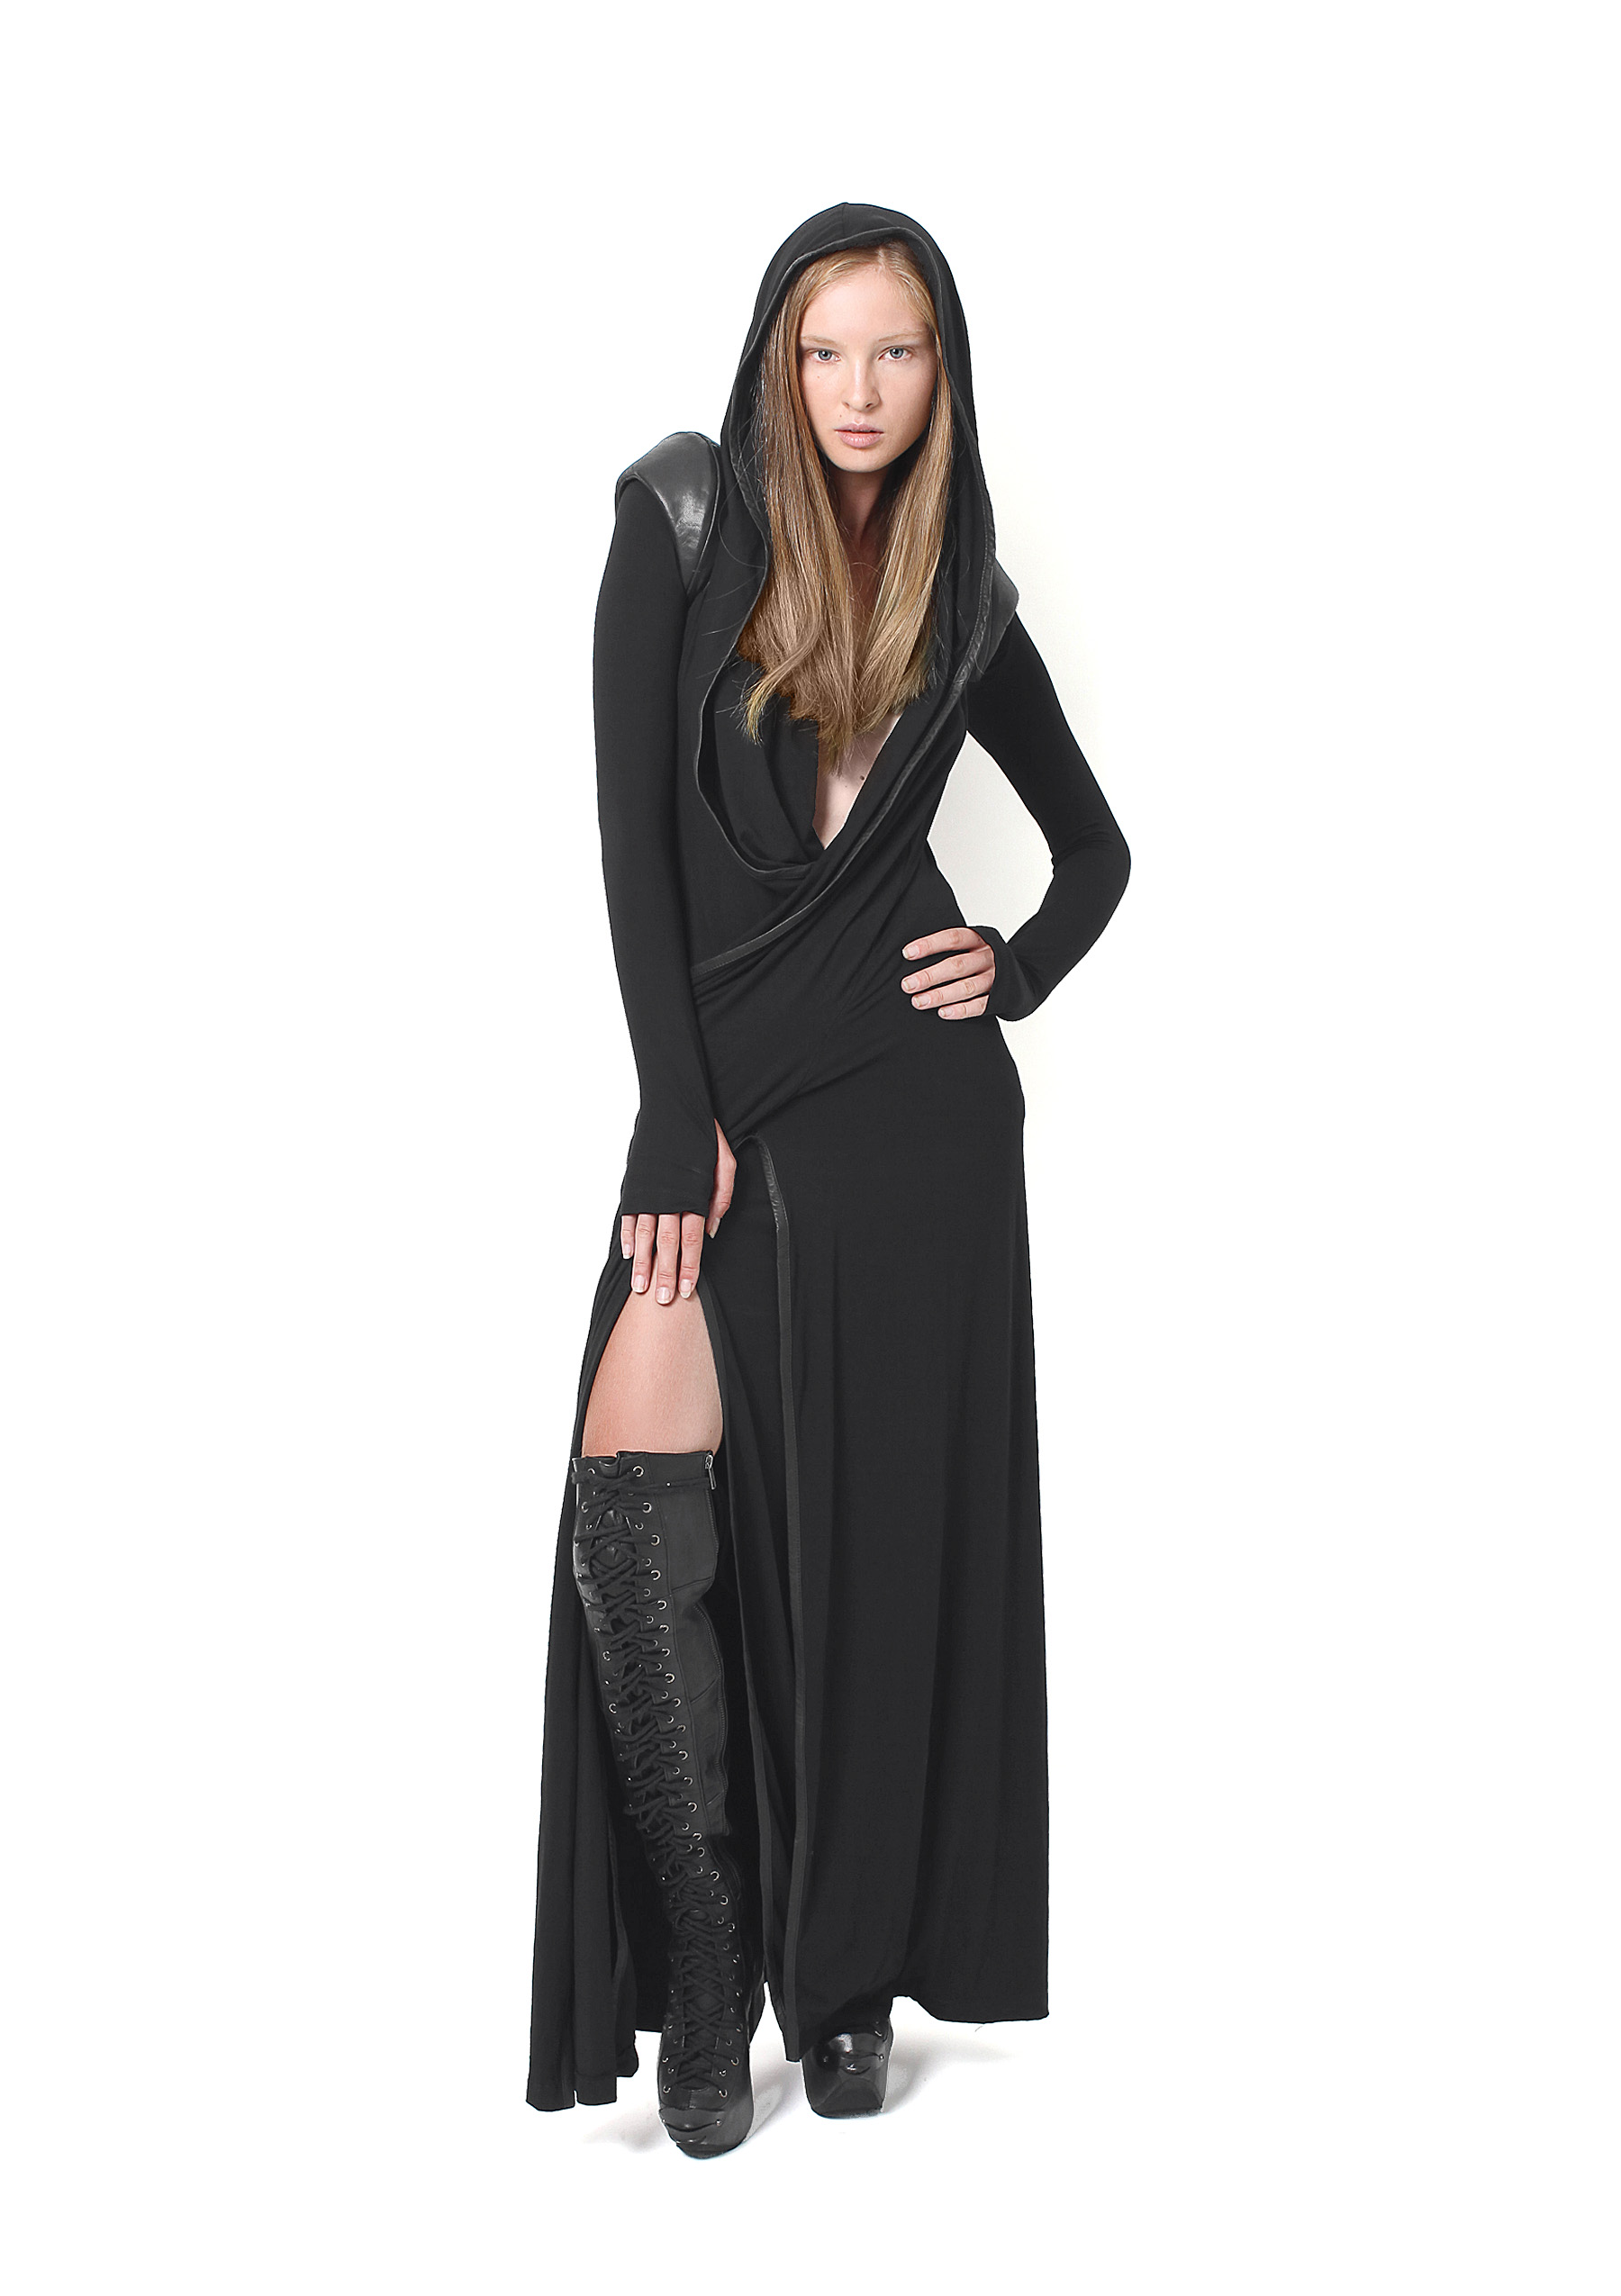 Drape Laced Dress, Long Plated Boots